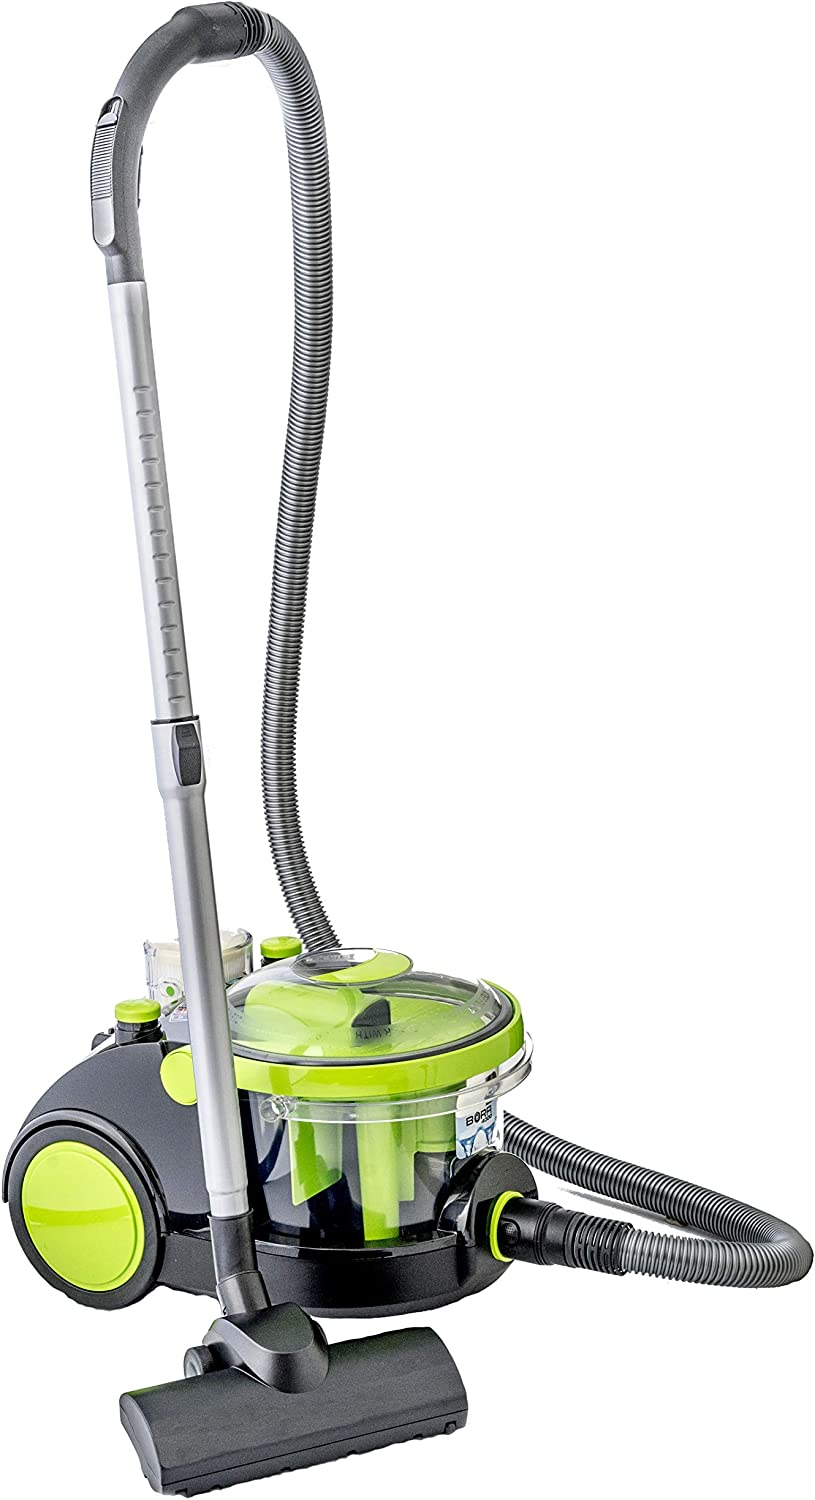 Arnica Bora 4000 Award Winning Vacuum Cleaner with Water Filtration and HEPA Filter 2400W